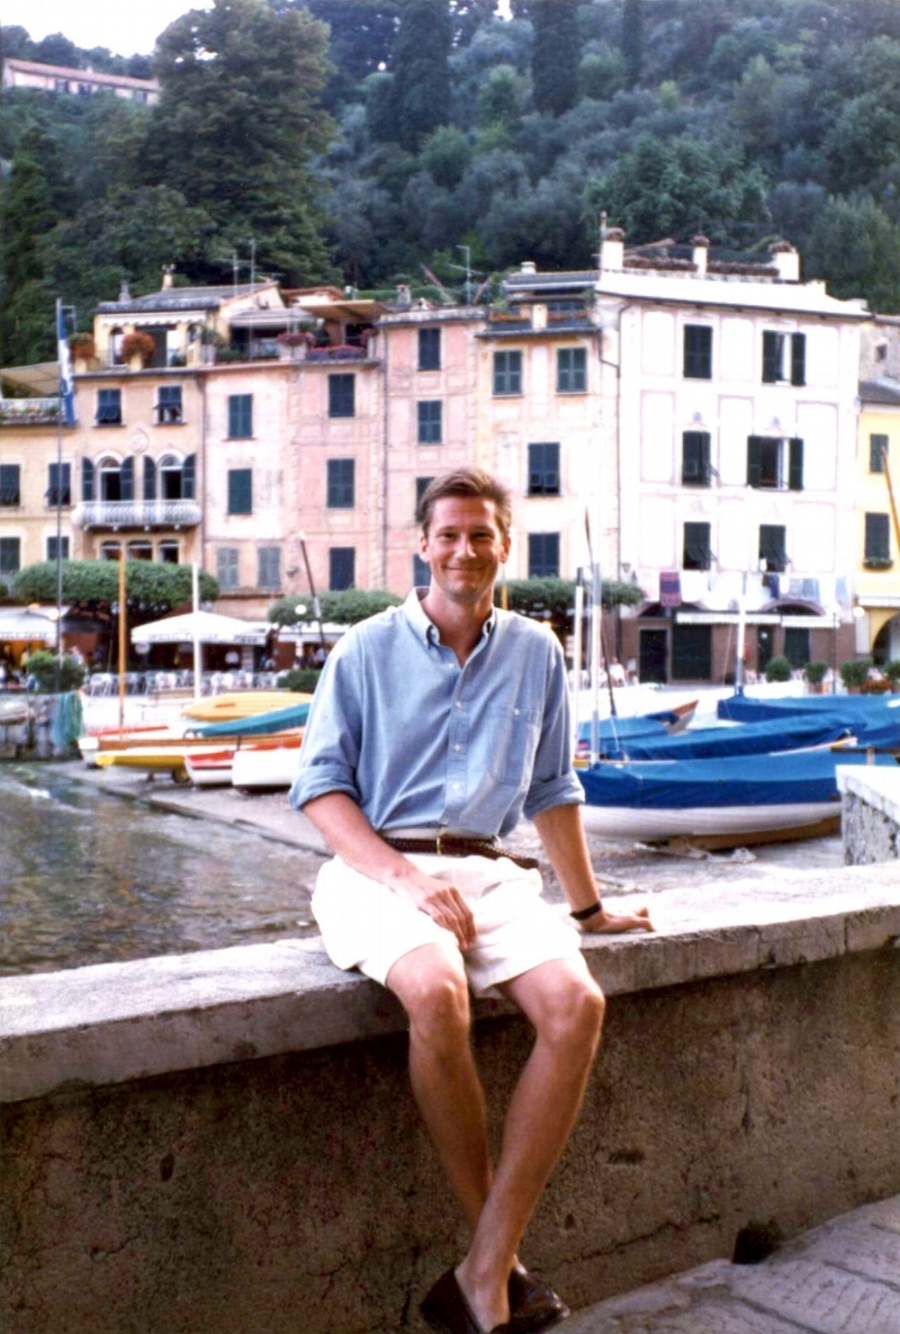 "QUINN MUSICIAN AND DOCTOR  Me in 1991 in Portofino, Italy - I was a second year resident at New York Hospital. I won first prize at the twenty-sixth annual International Piano Competition at the Giornate Musicali Festival in Italy. I played Beethoven's  ""Appassionata""  Sonata."